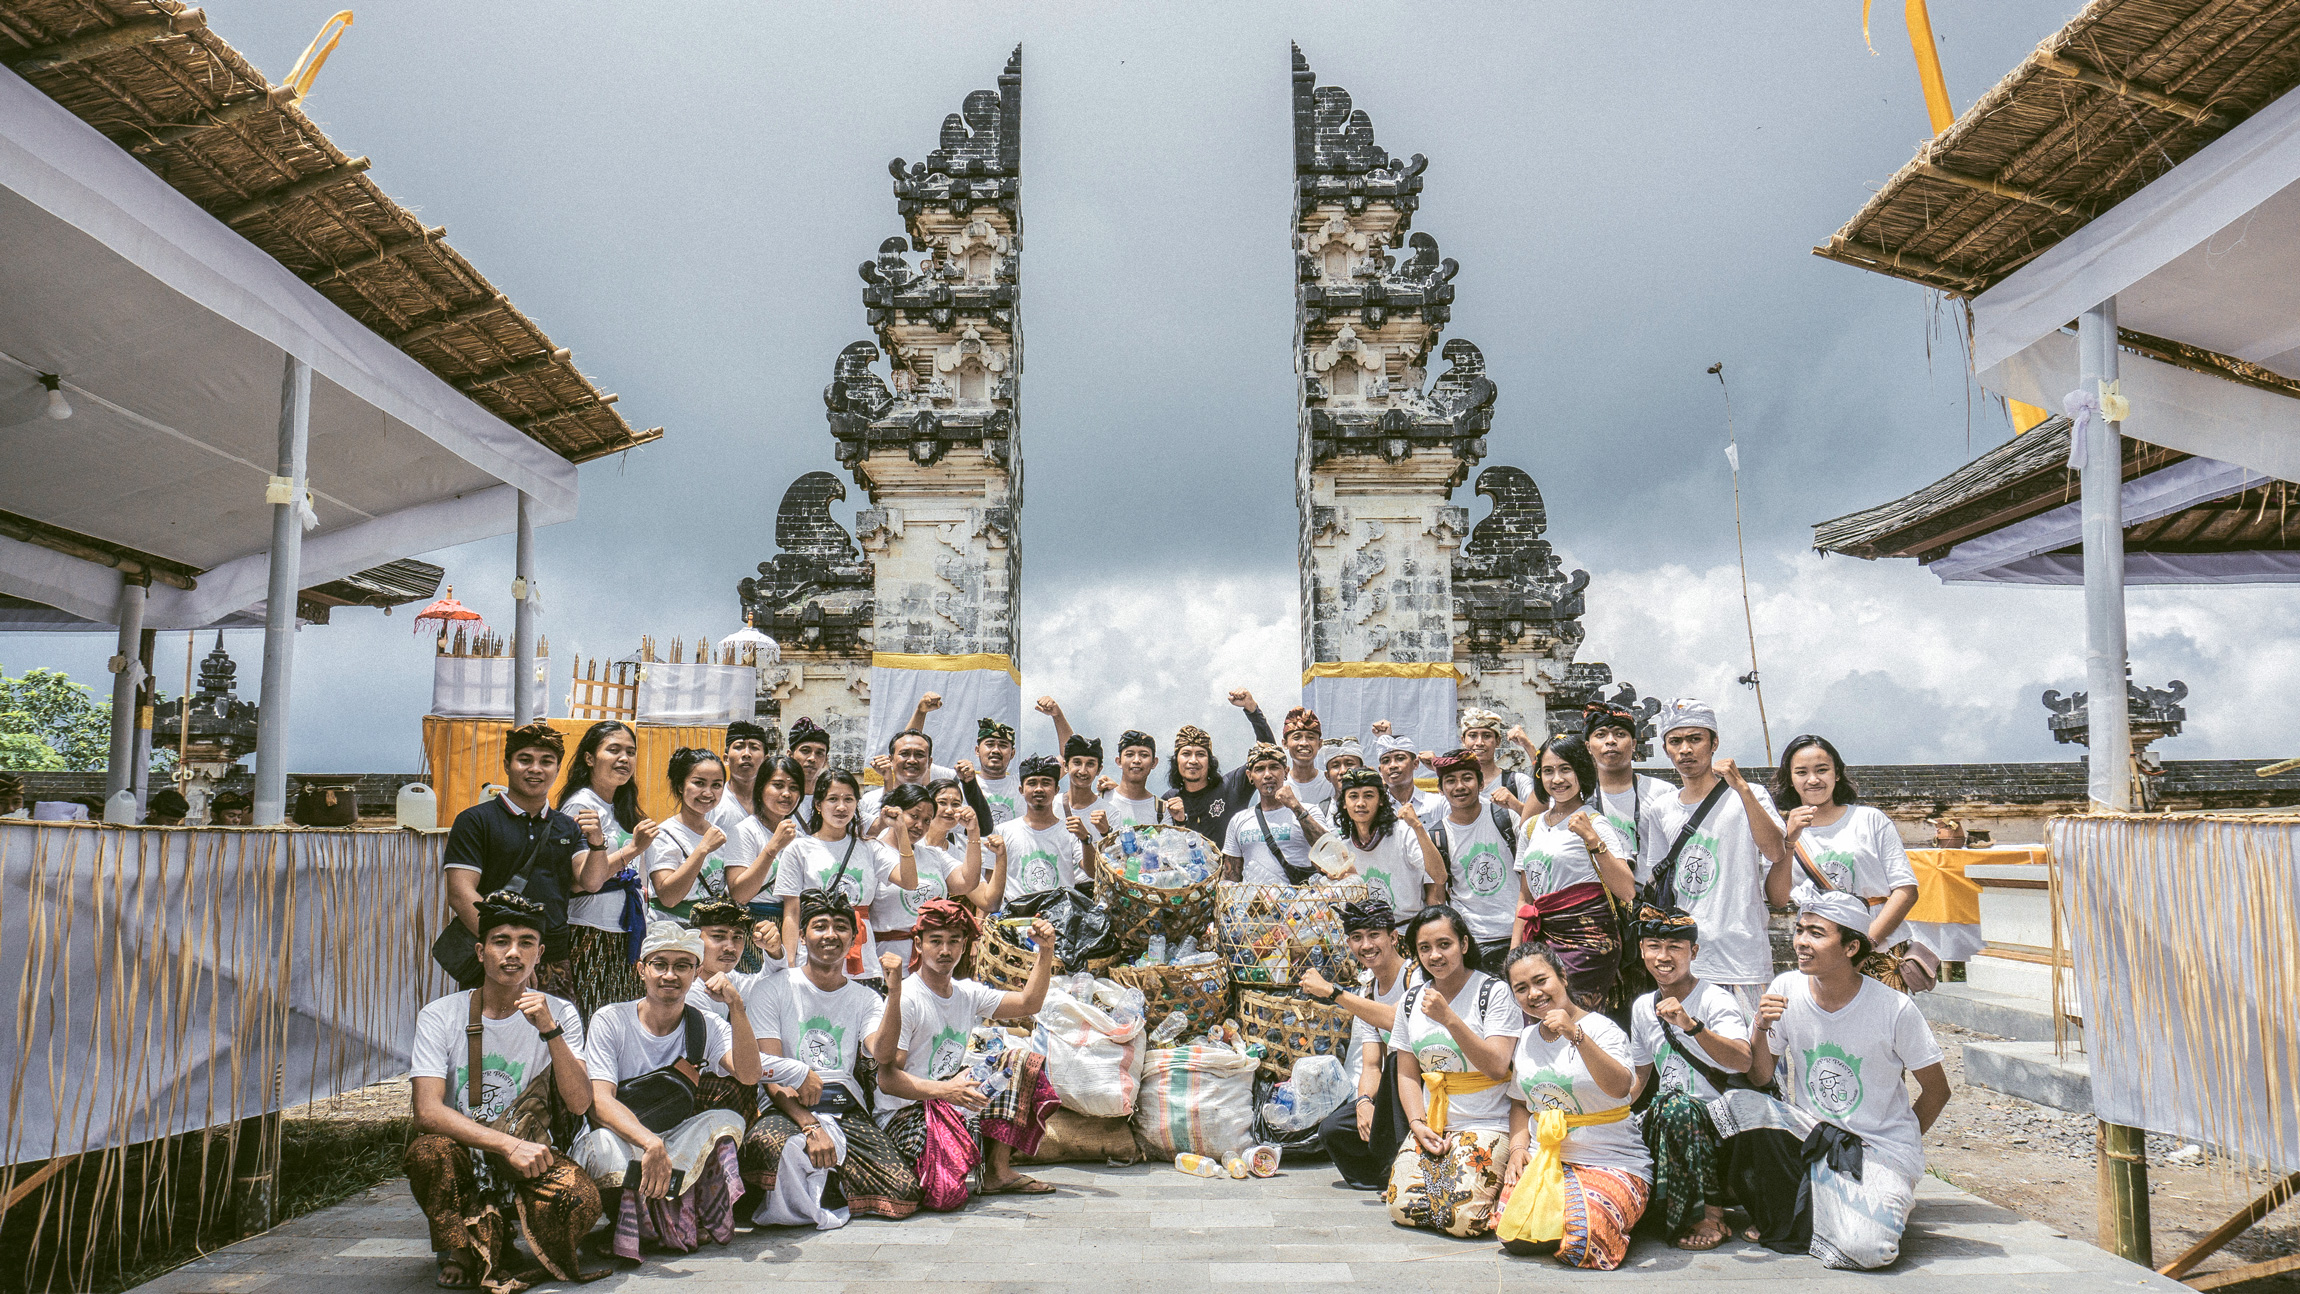 Pulau Plastik (Plastic Island): A Collaborative Campaign for A Cleaner Bali Phase 3